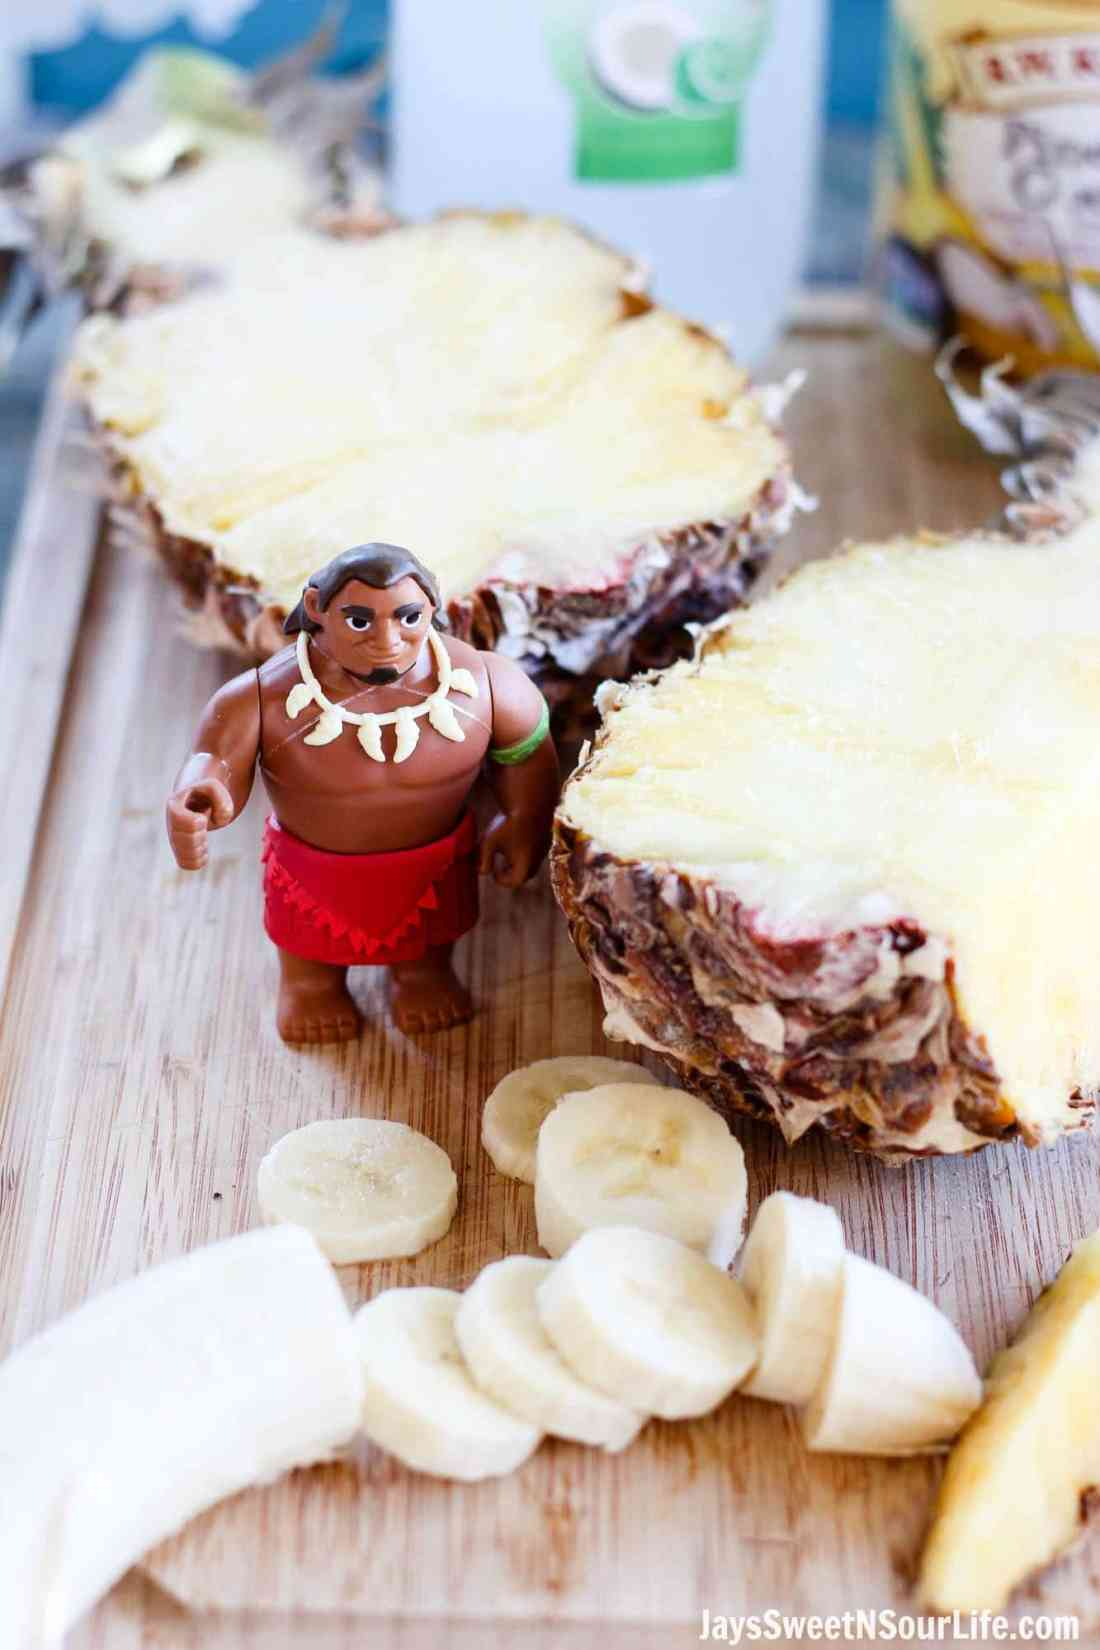 moana-pineapple-soda-punch-ingredients-2